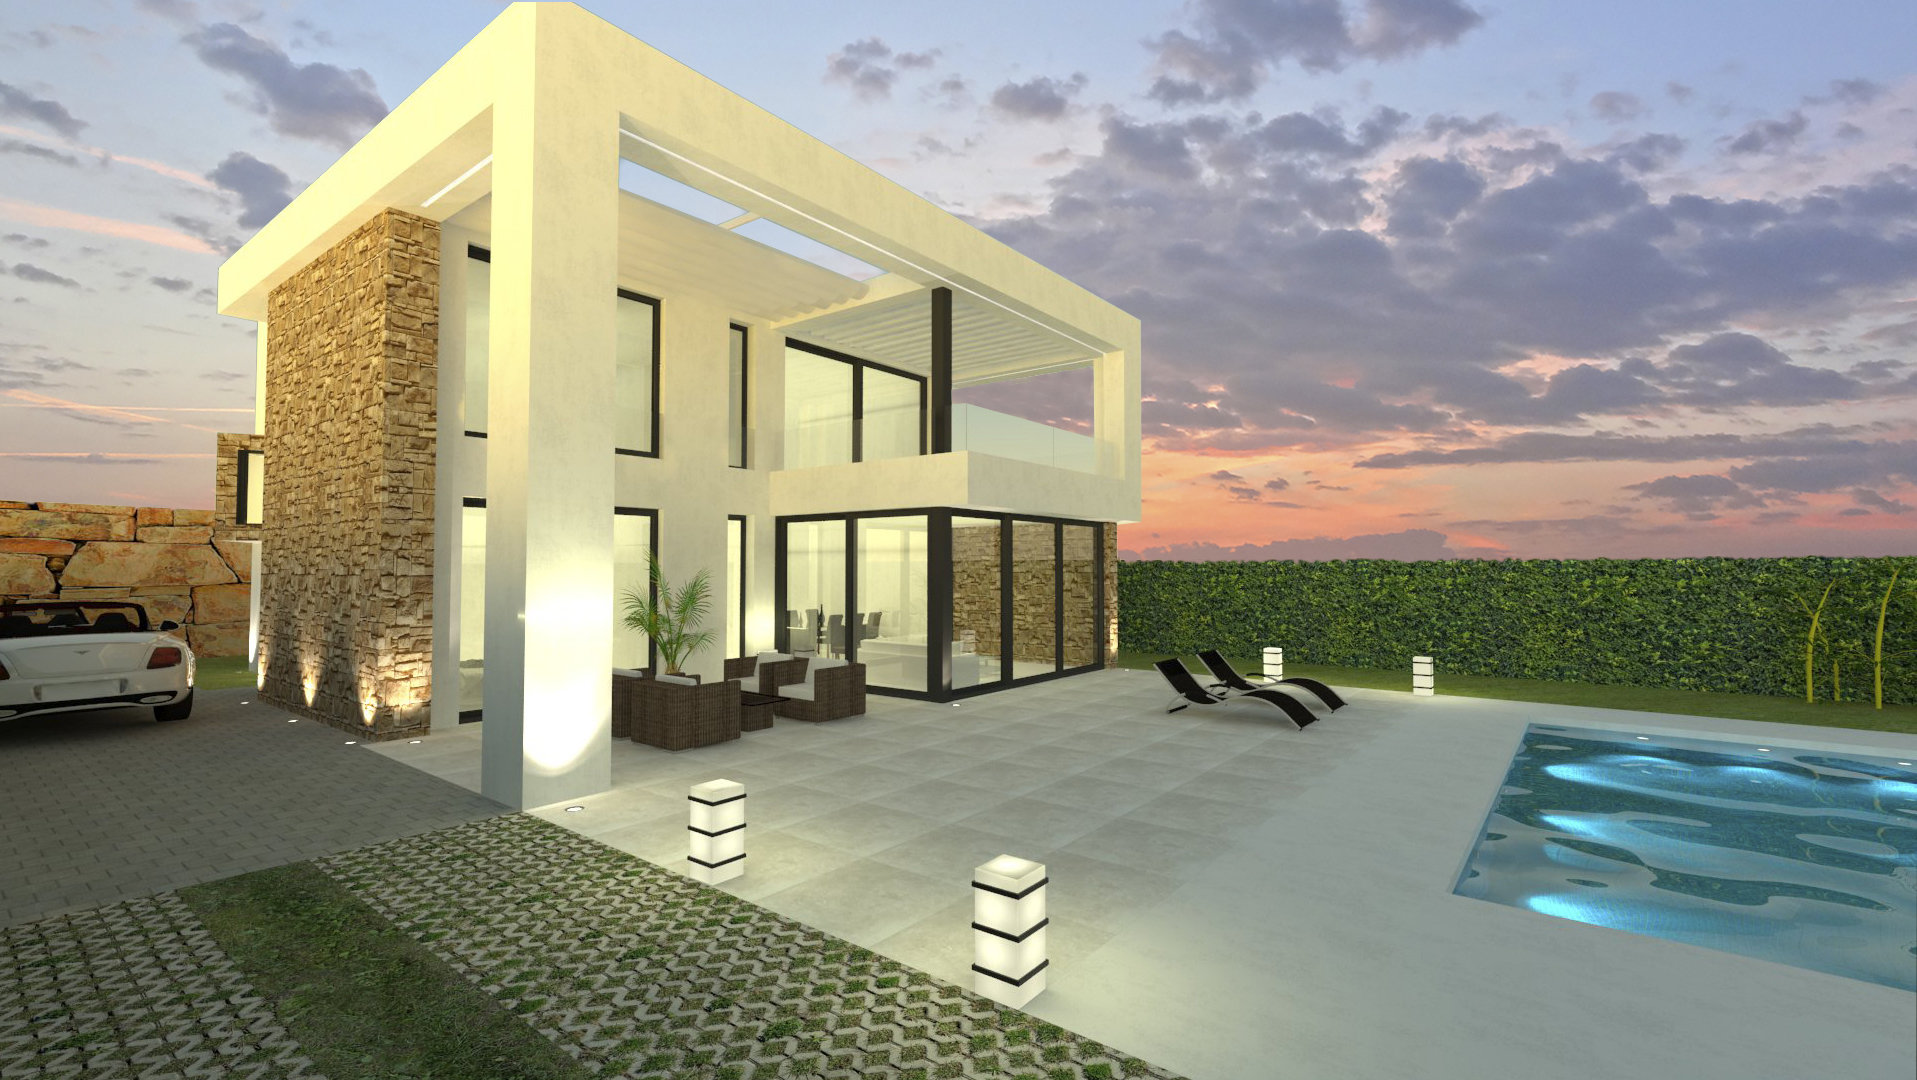 4 Bedroom 3 Bathroom Villa For Sale In Mijas Mas Property Marbella